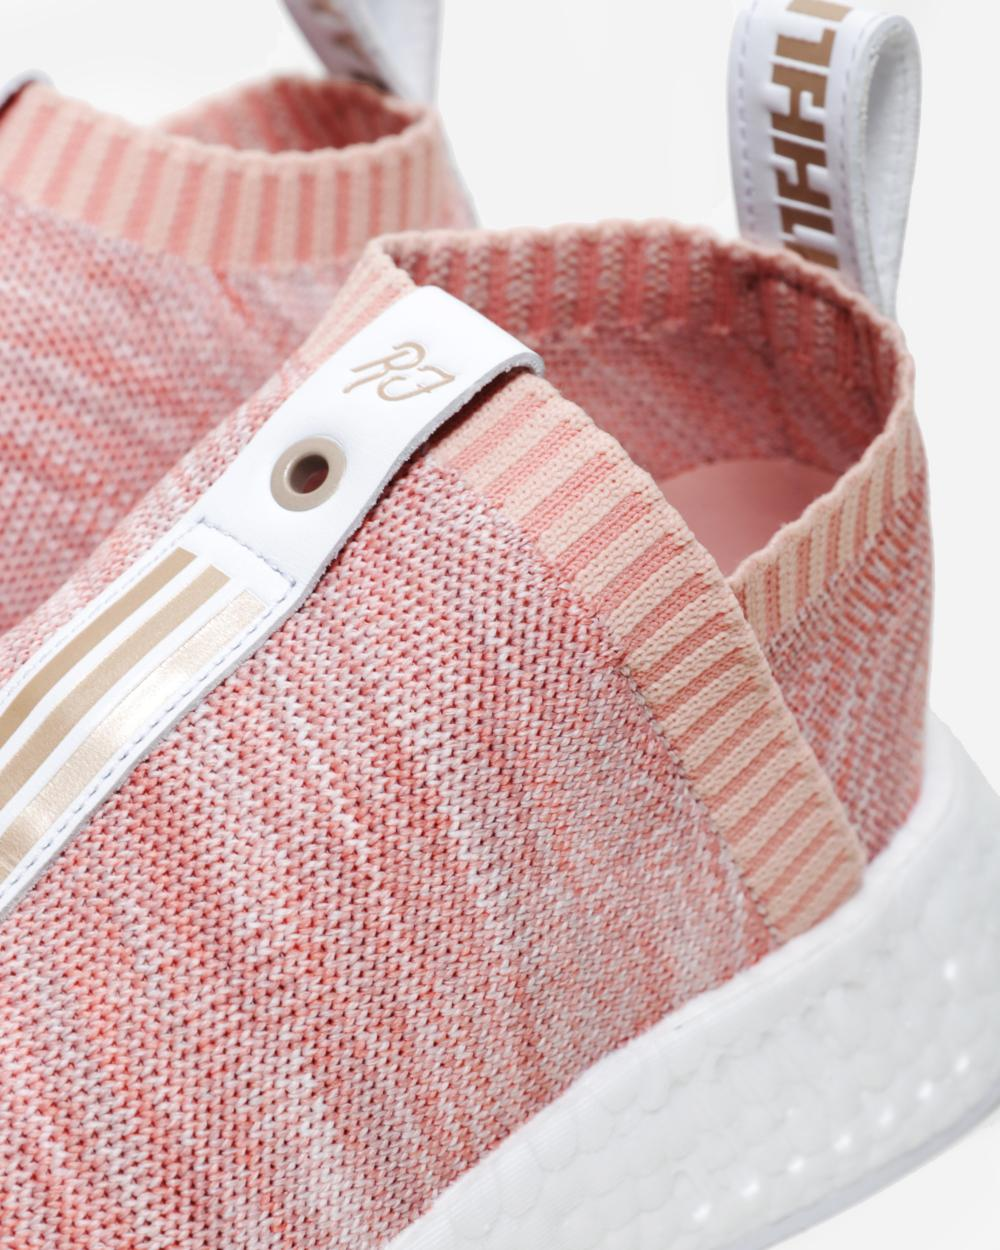 d526a3d8b1f0b The adidas NMD CS2 Pigskin Suede Pack Releases Next Week